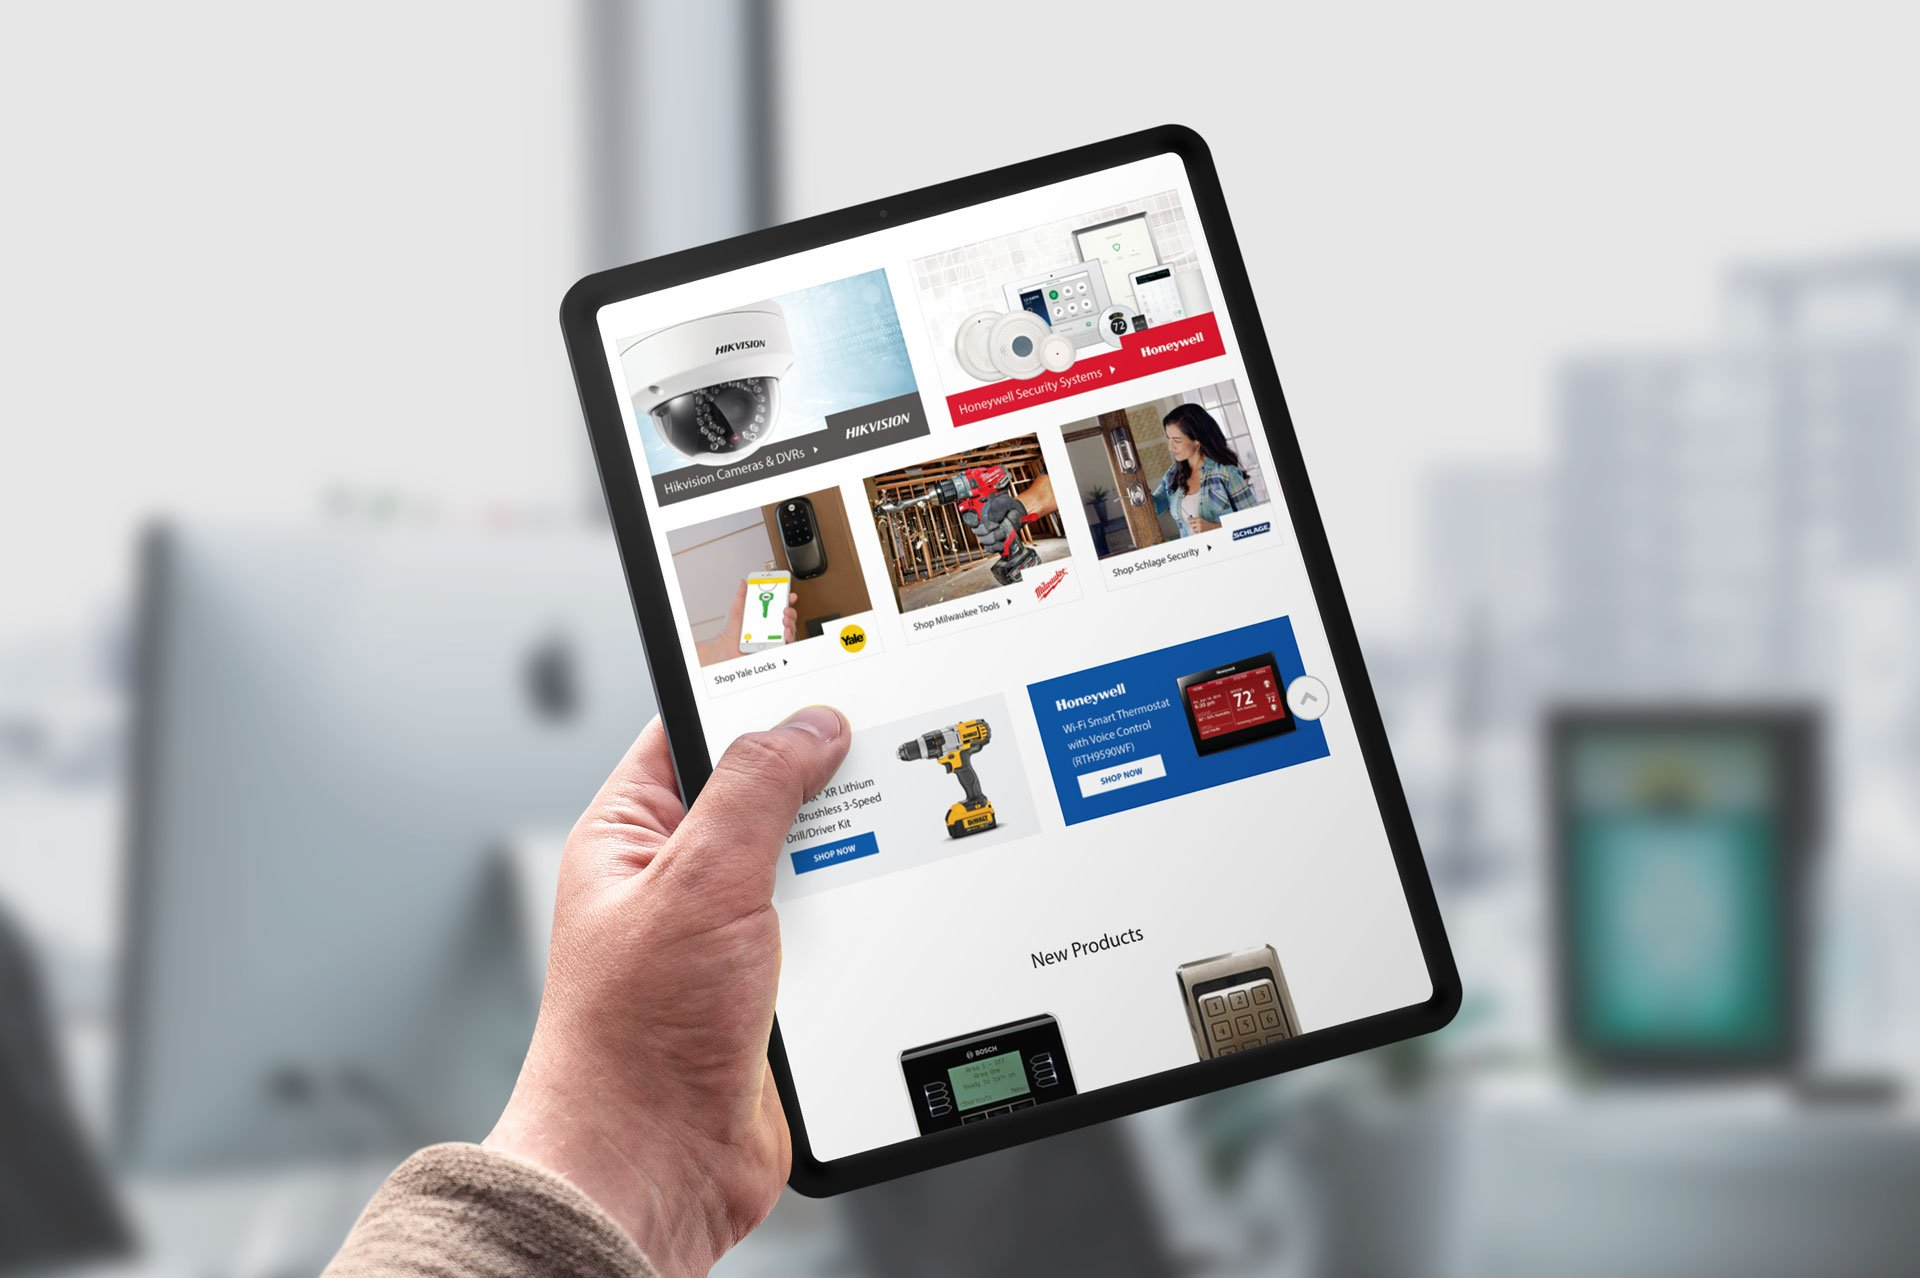 Hand Holding A Tablet With Online Security Superstore Product Page On Screen